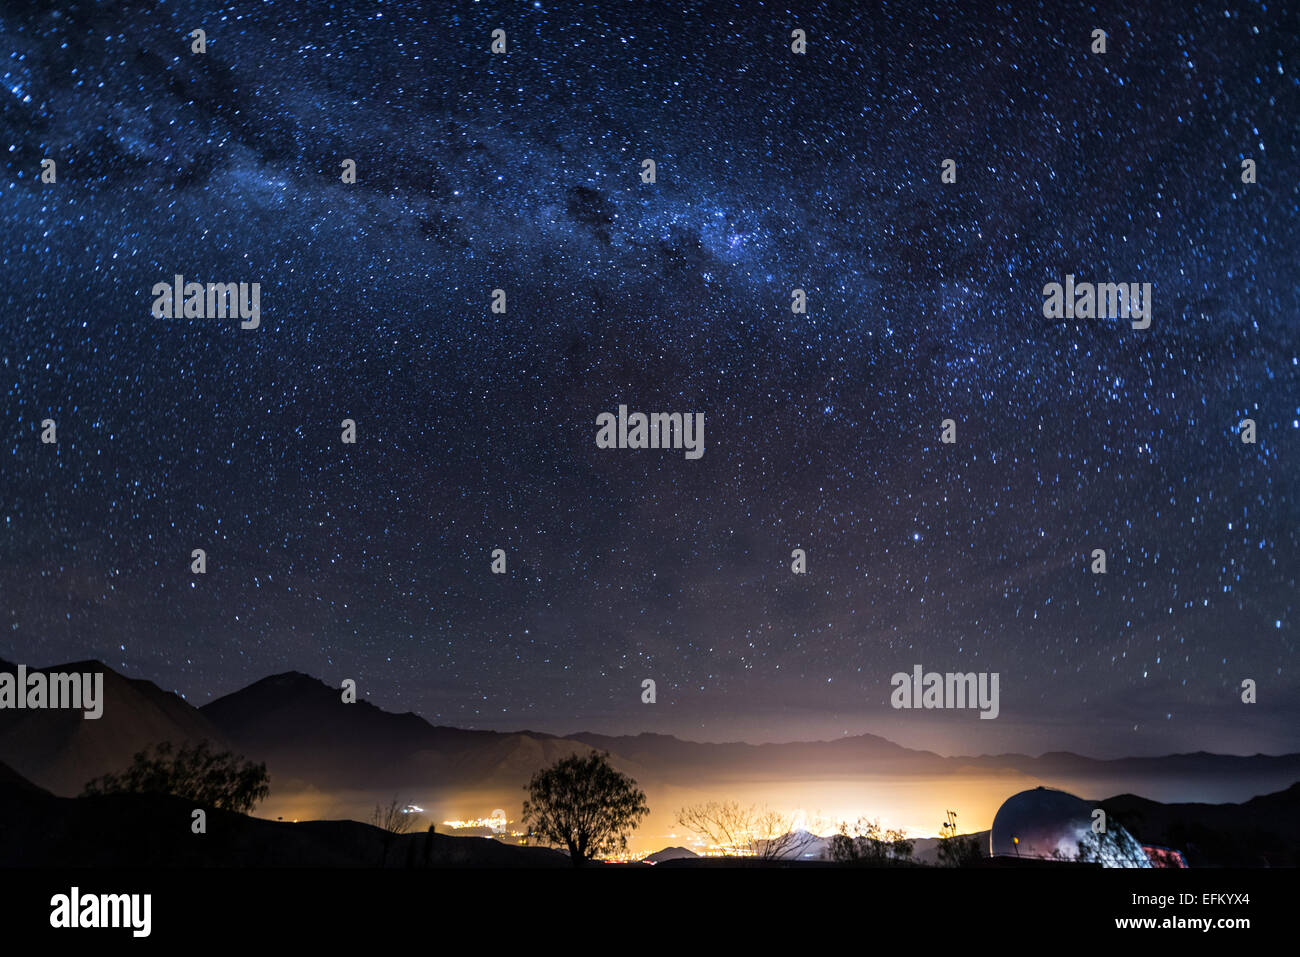 View of the Milky Way over the Elqui Valley in Chile - Stock Image